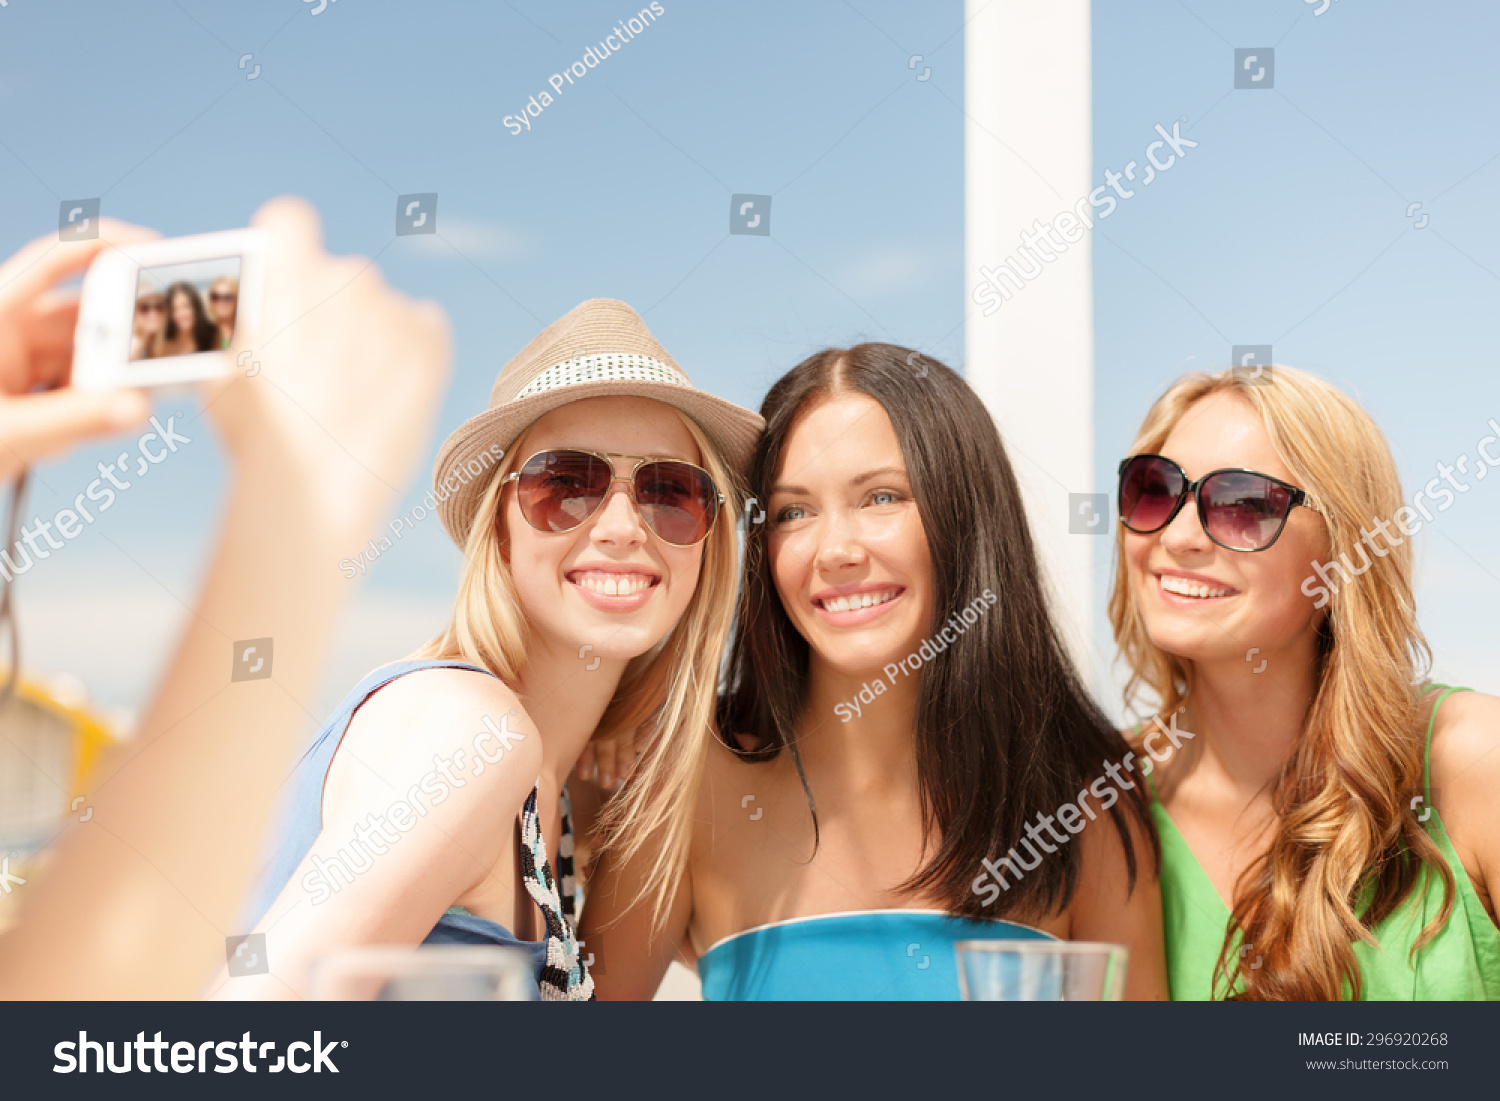 Summer Holidays Vacation Concept Smiling Girls Stock Photo